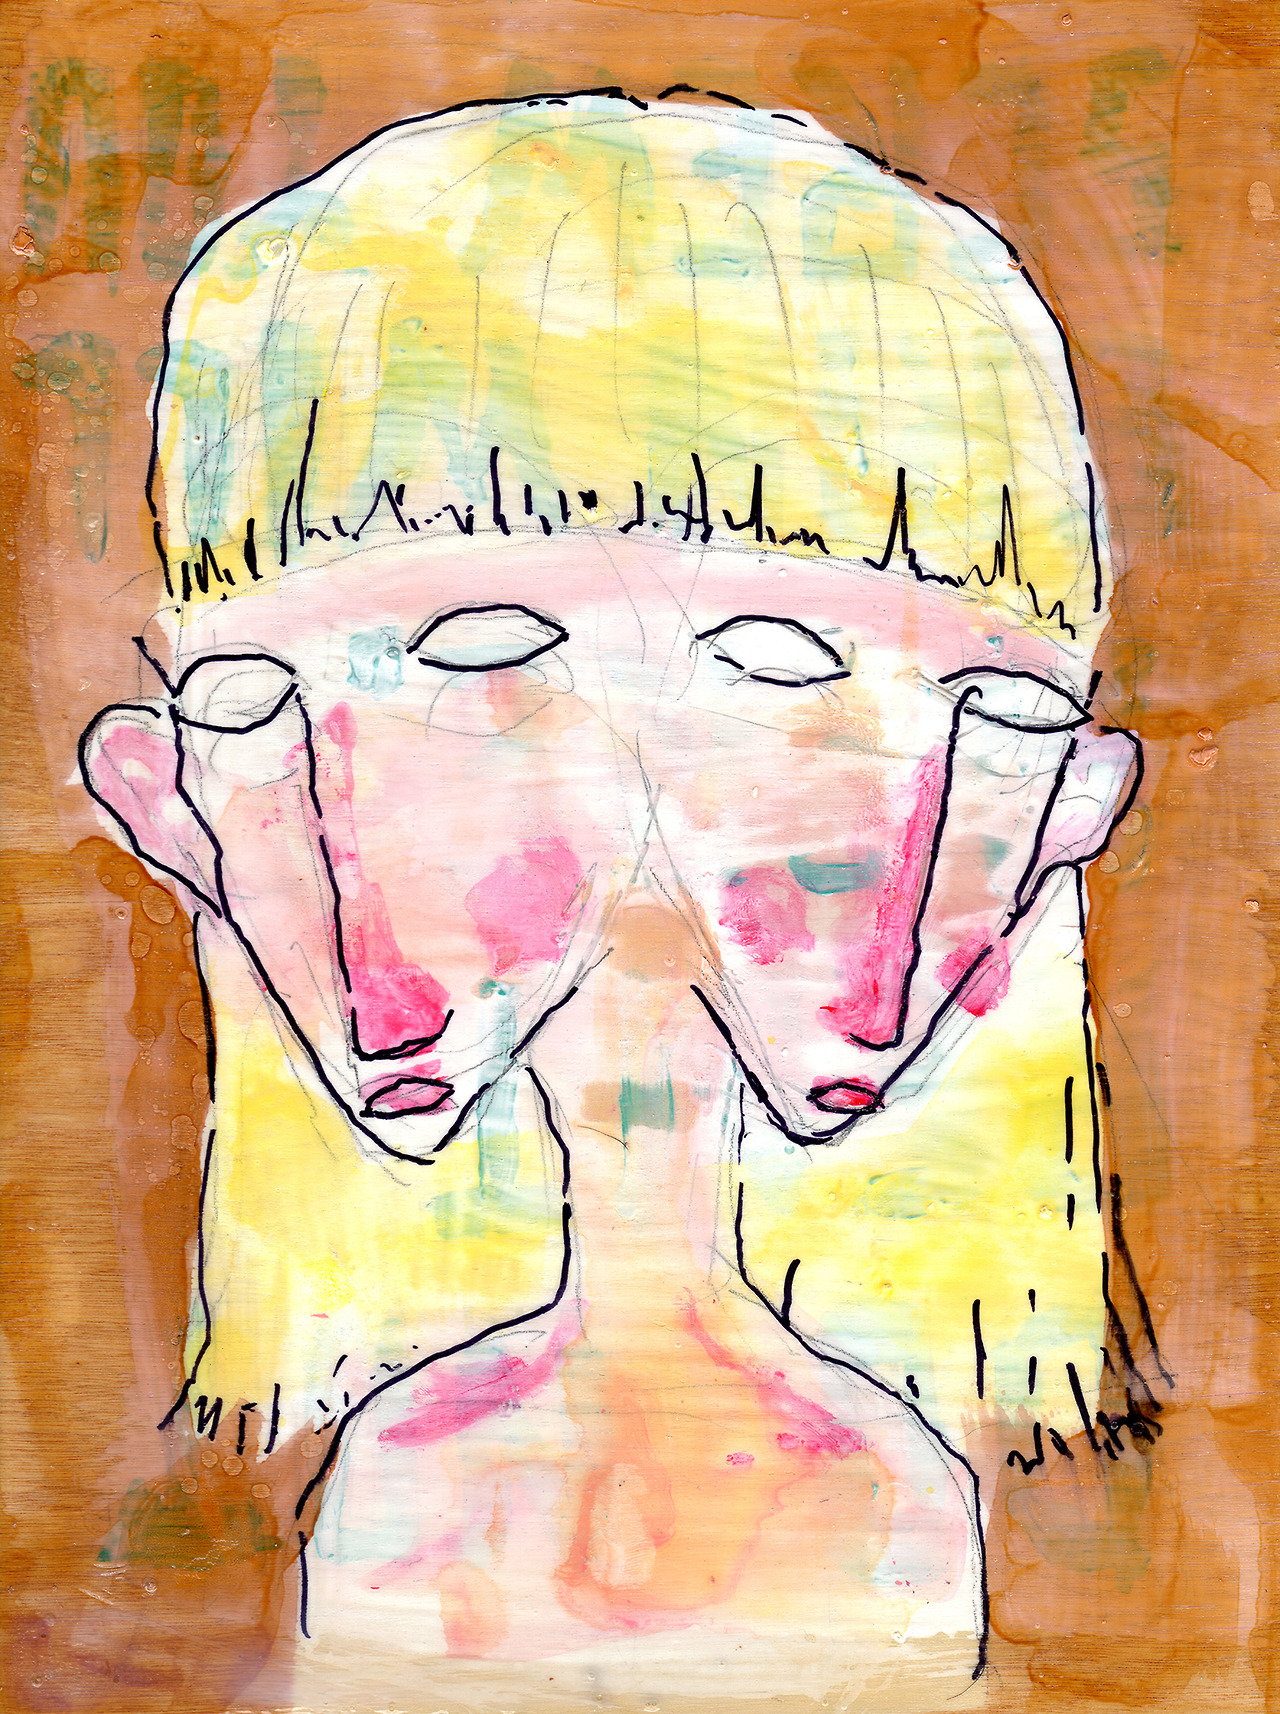 10/24/13 -  Doublefaced Duella.    Yeah, not sure what to say about this one. Started sketching on top of an old, unfinished piece and this is what came out.   Buy it here -  http://taylorwinder.bigcartel.com    Prints here -  http://society6.com/taylorwinder